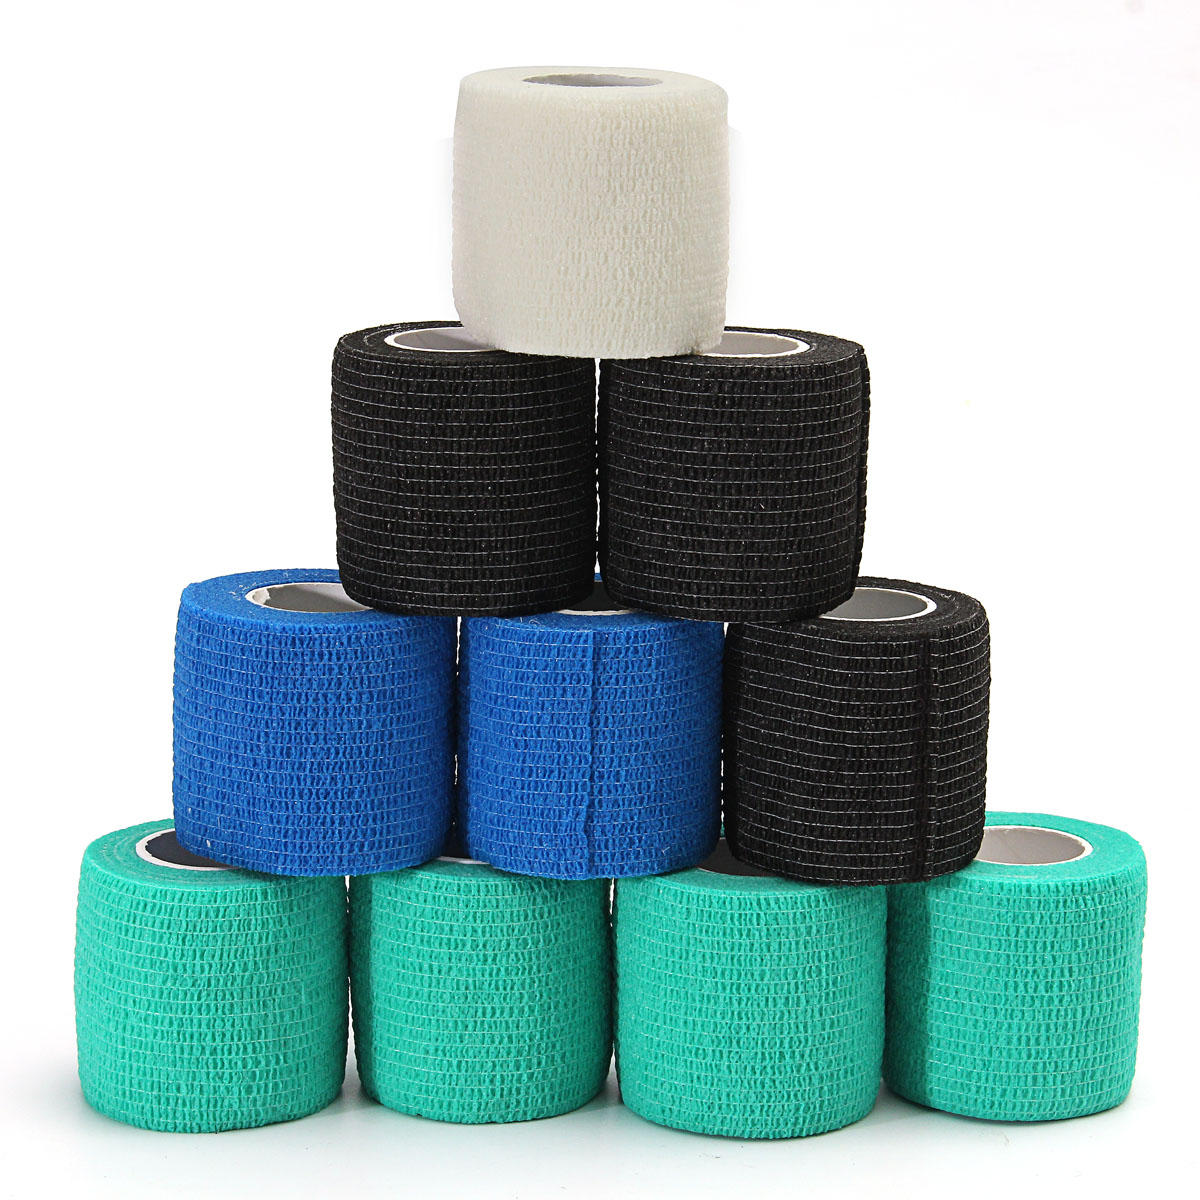 Emergency Kits 10pcs Security Protection Waterproof Self-adhesive Cshesive Bandages Elastic Wrap First Aid Sports Body Gauze Vet Medical Tape